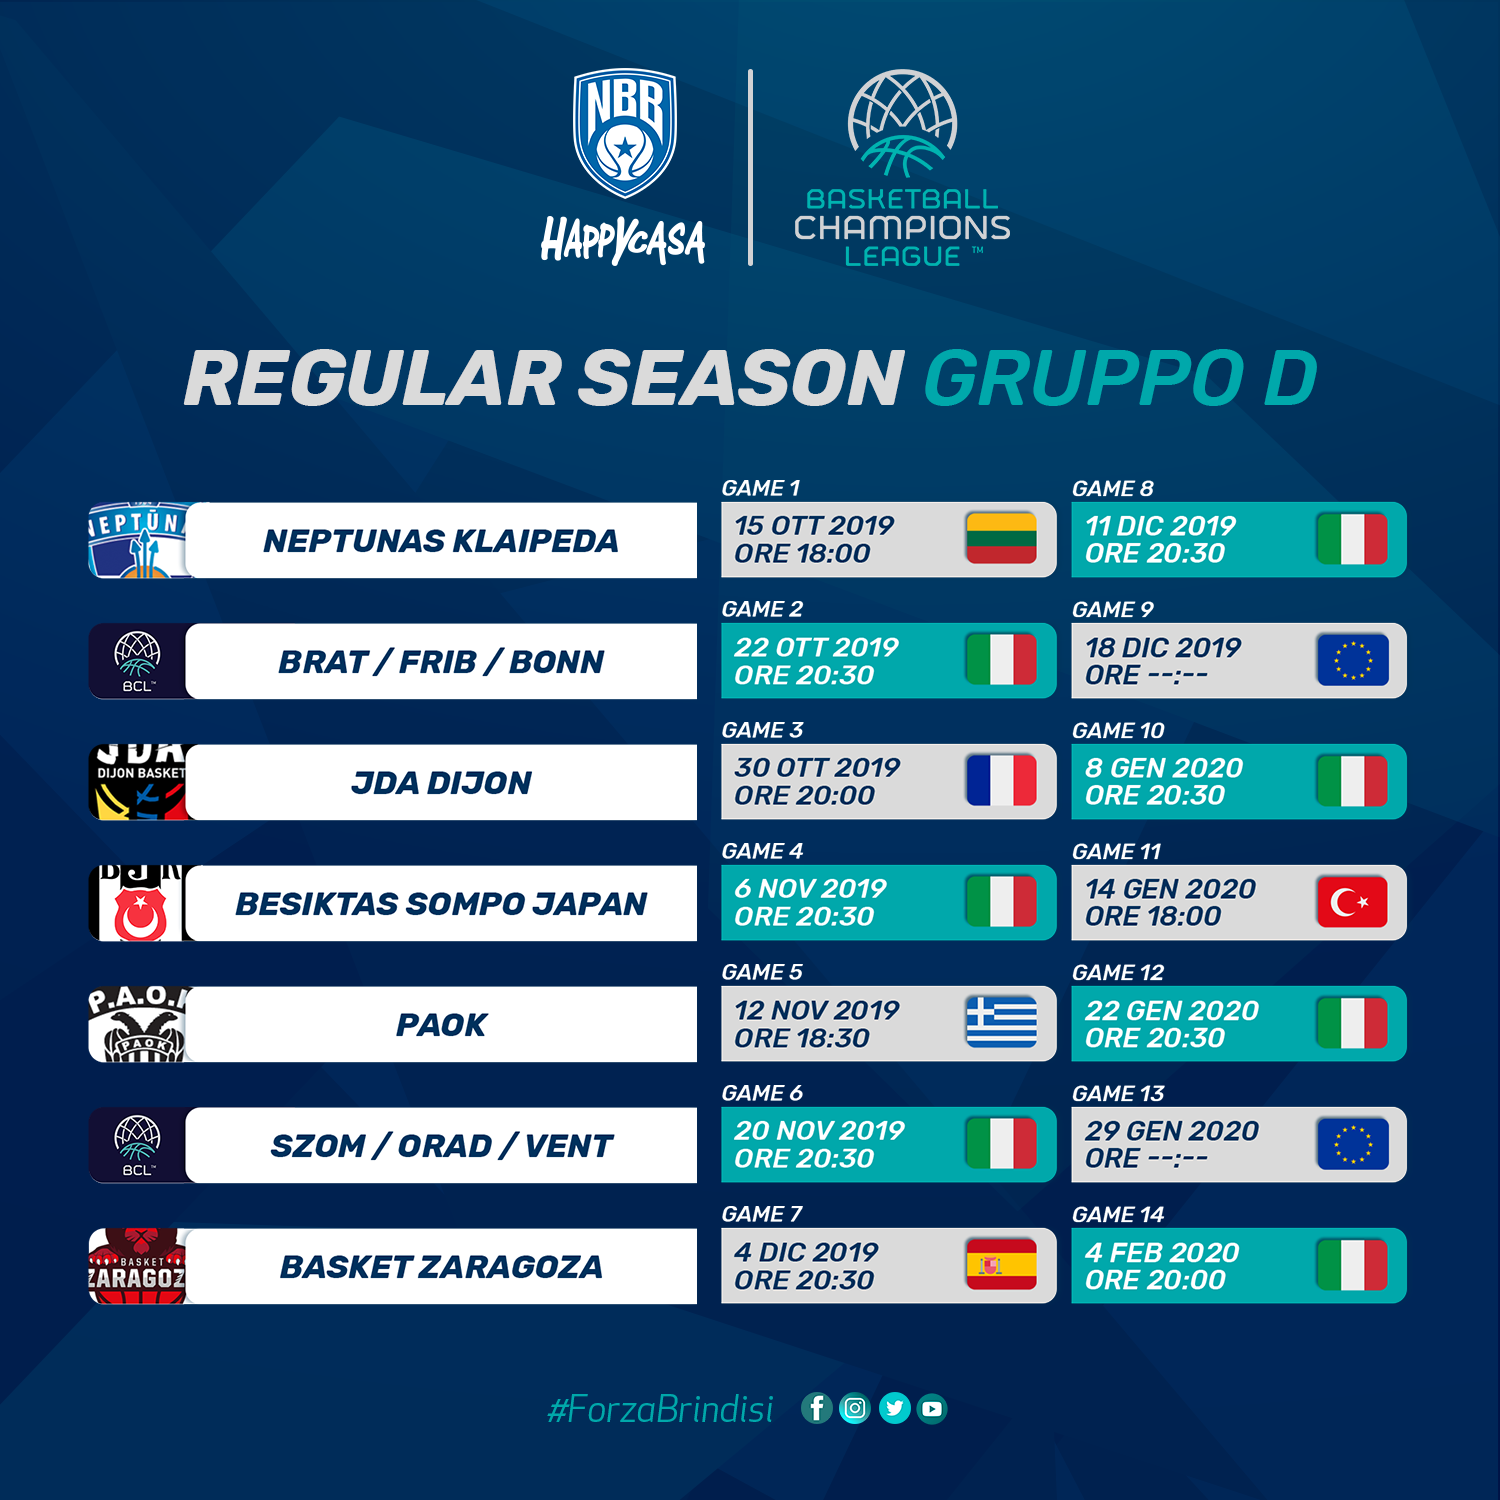 Calendario Della Champions League.Il Calendario Completo Della Happy Casa Brindisi In Regular